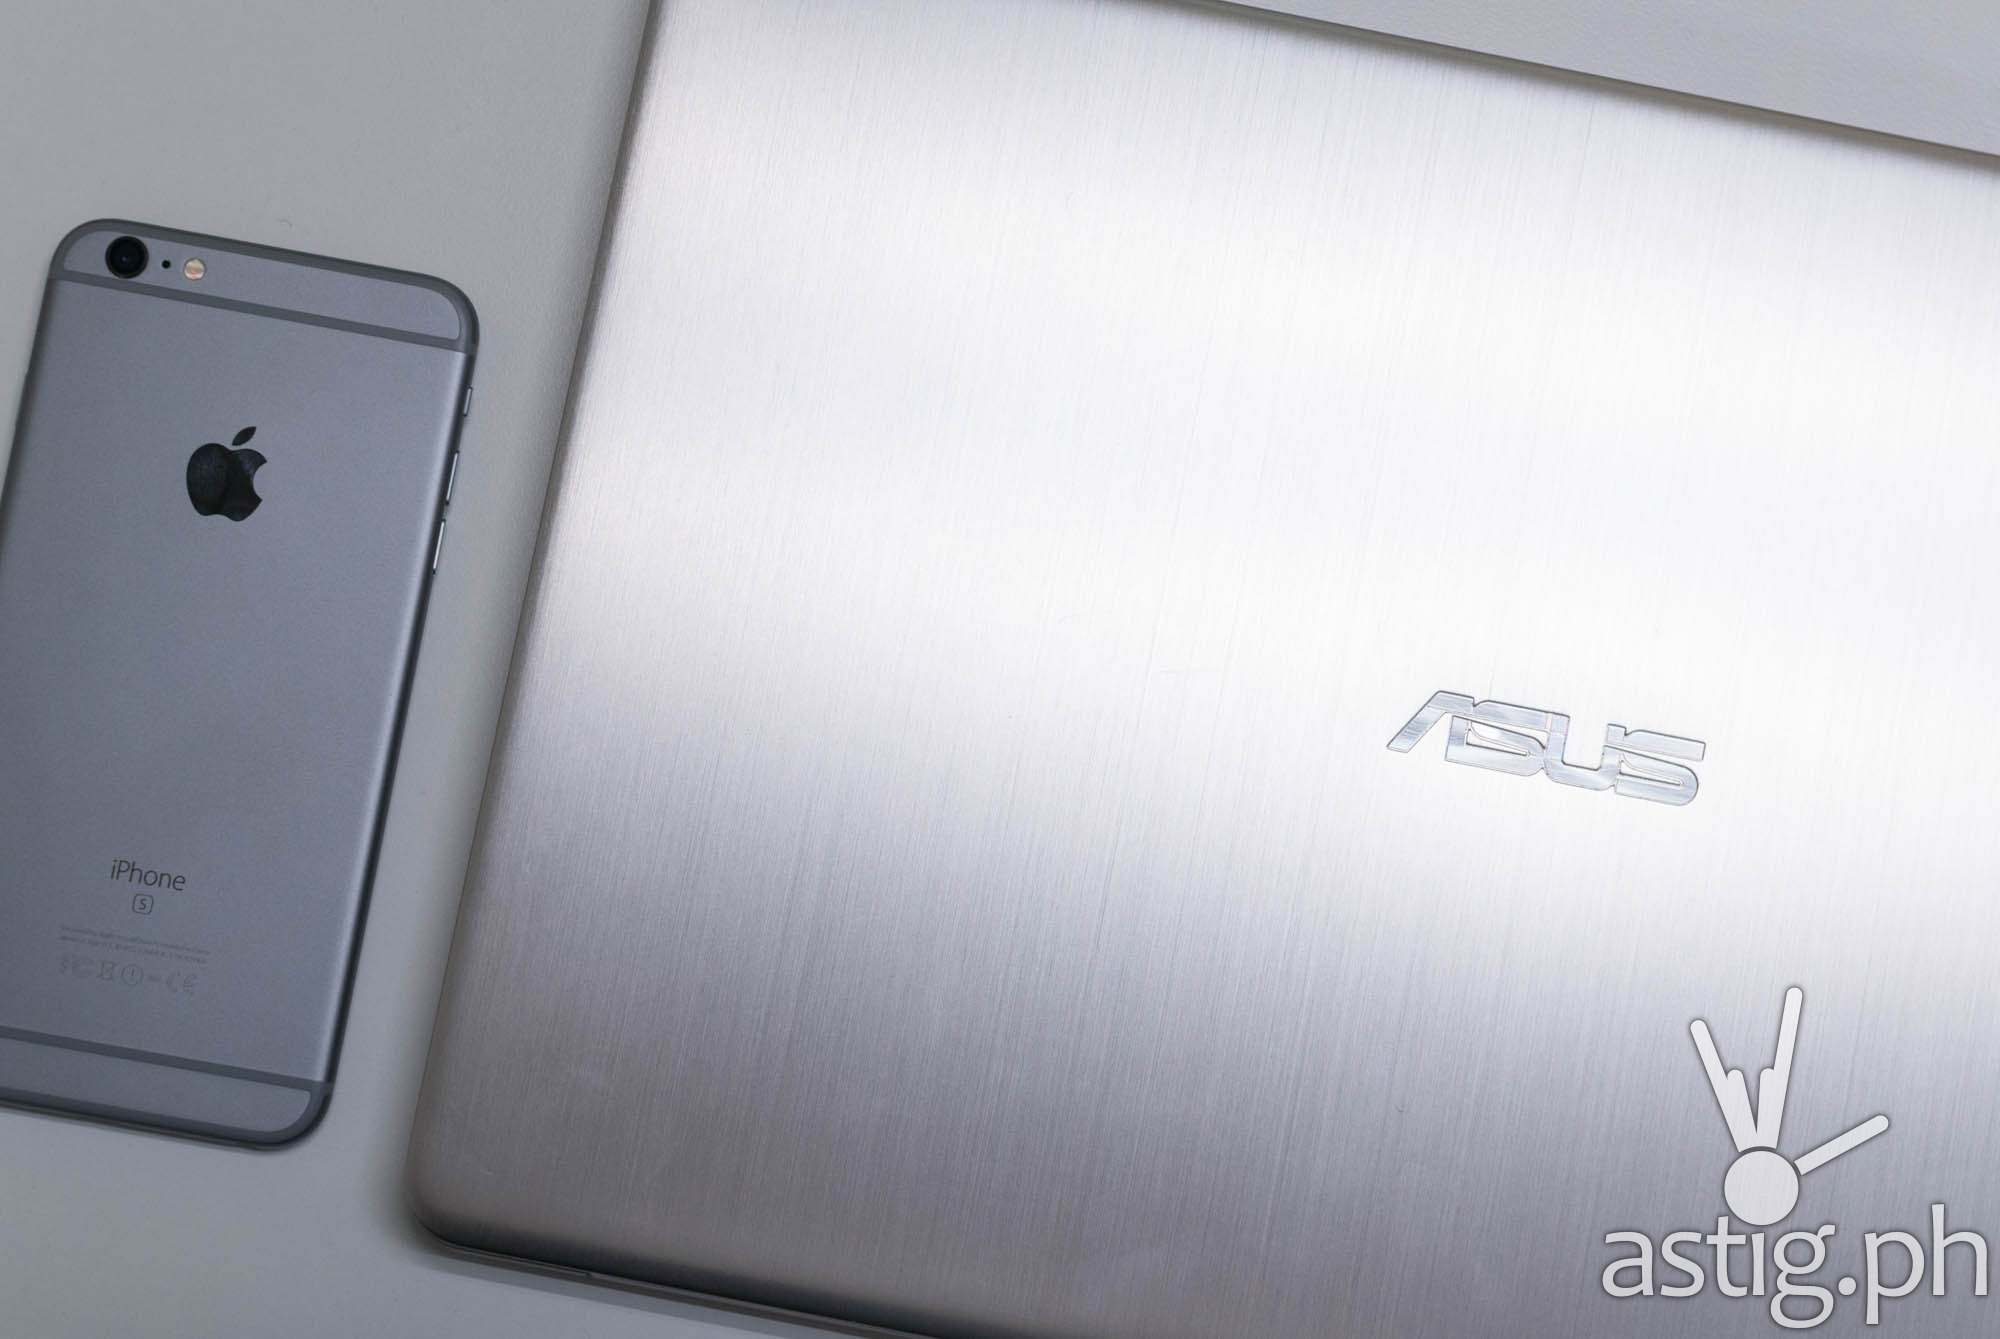 ASUS VivoBook S15 review: all-around productivity workhorse